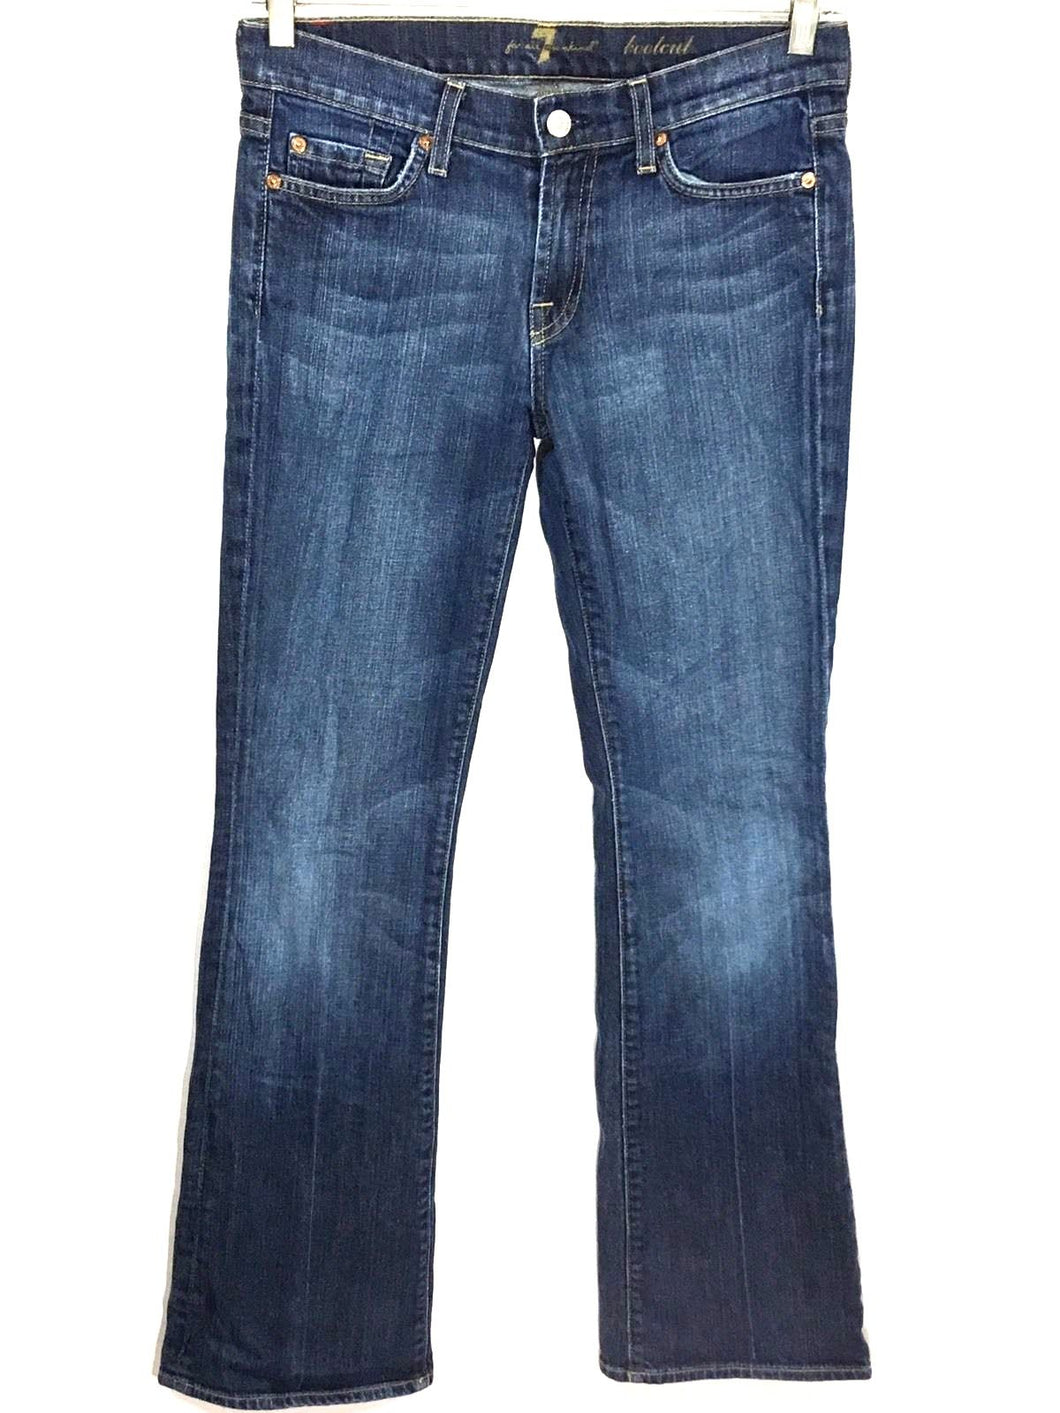 7 For All Mankind Boot Cut Dark Wash Low Rise Women's 27 Actual 29 x 31 - Preowned - FunkyCrap Boutique